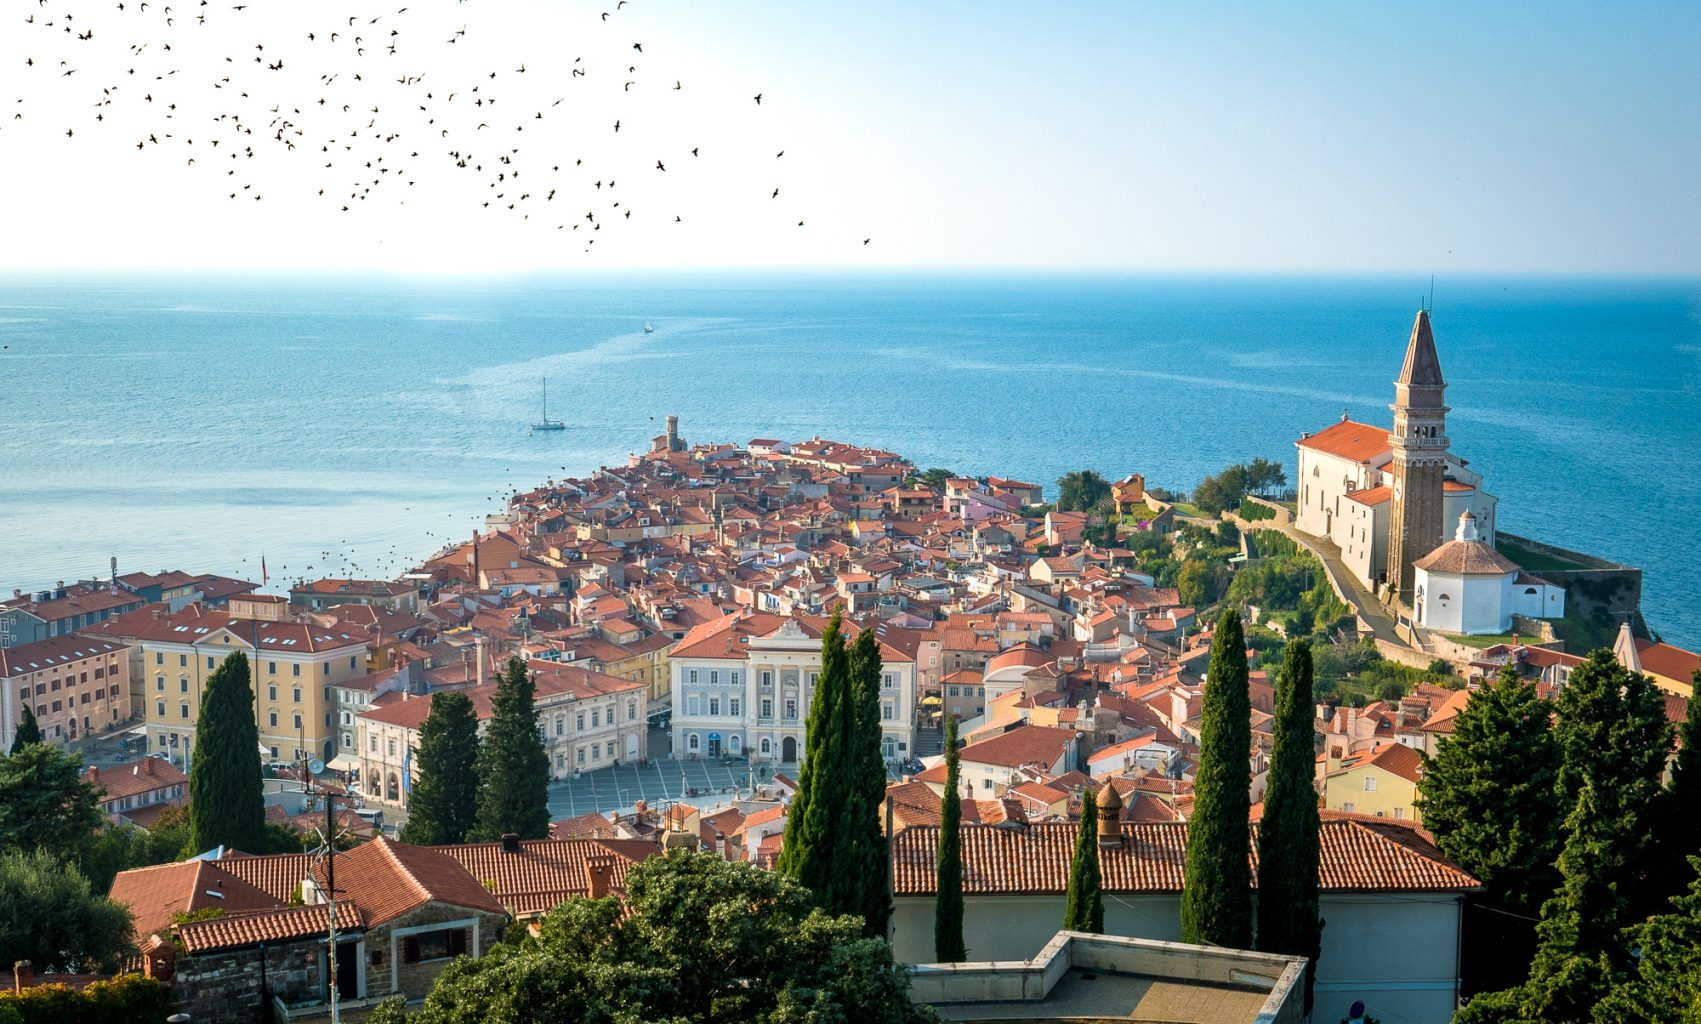 Piran from town wall with birds